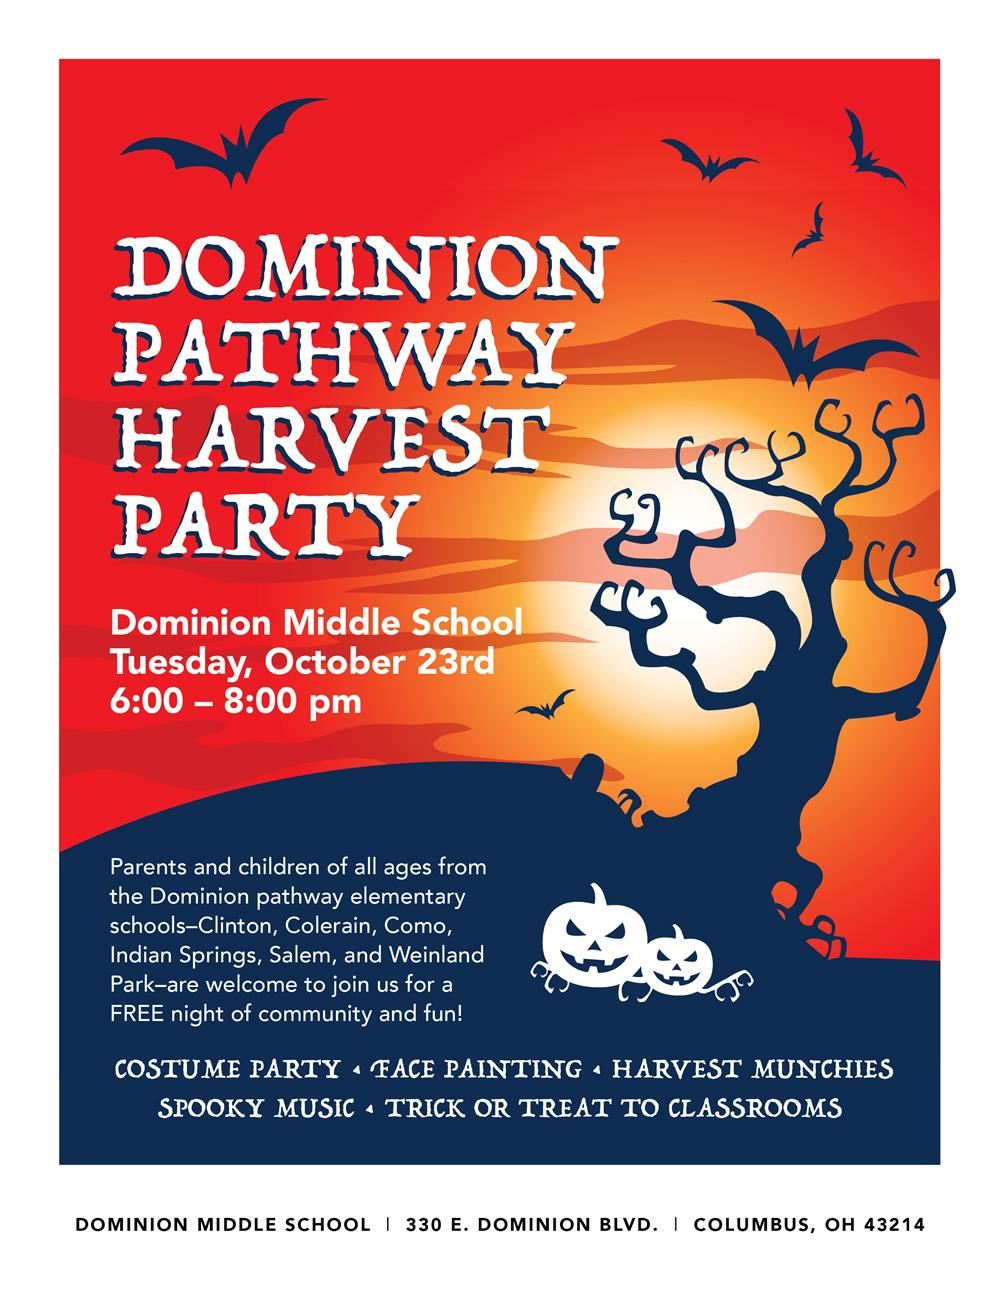 Dominion Middle School Harvest Party